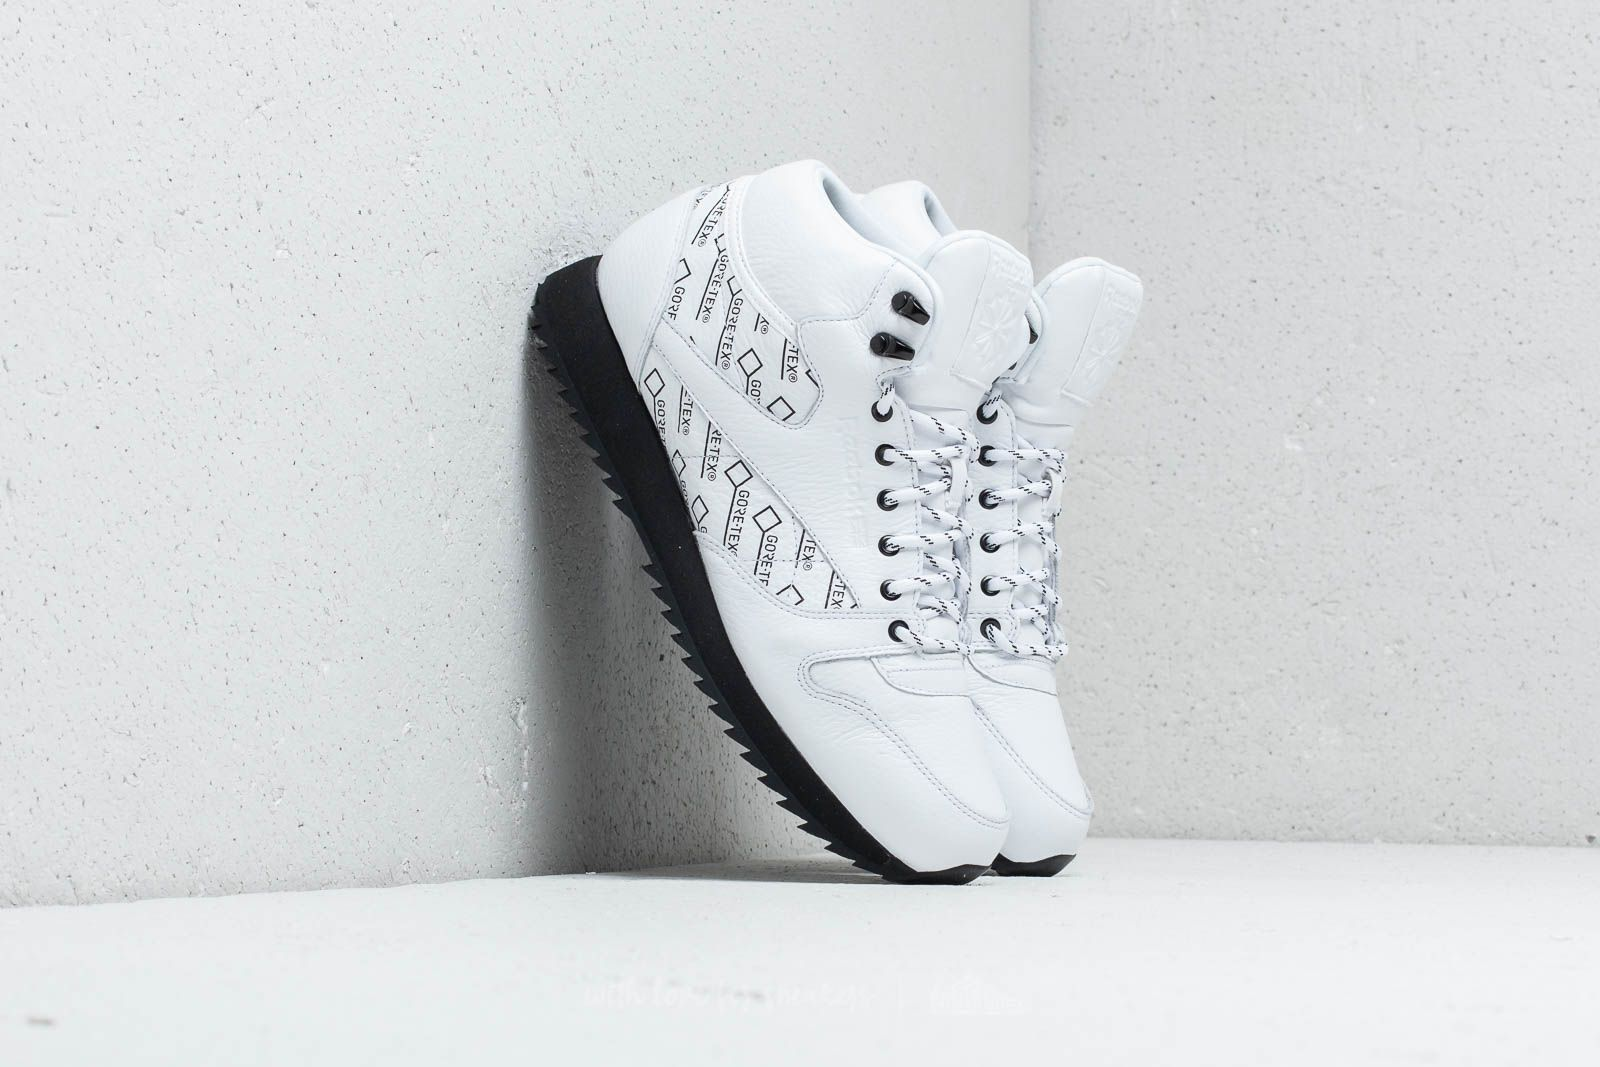 Reebok CL Leather Mid Ripple Gore-Tex White/ Black